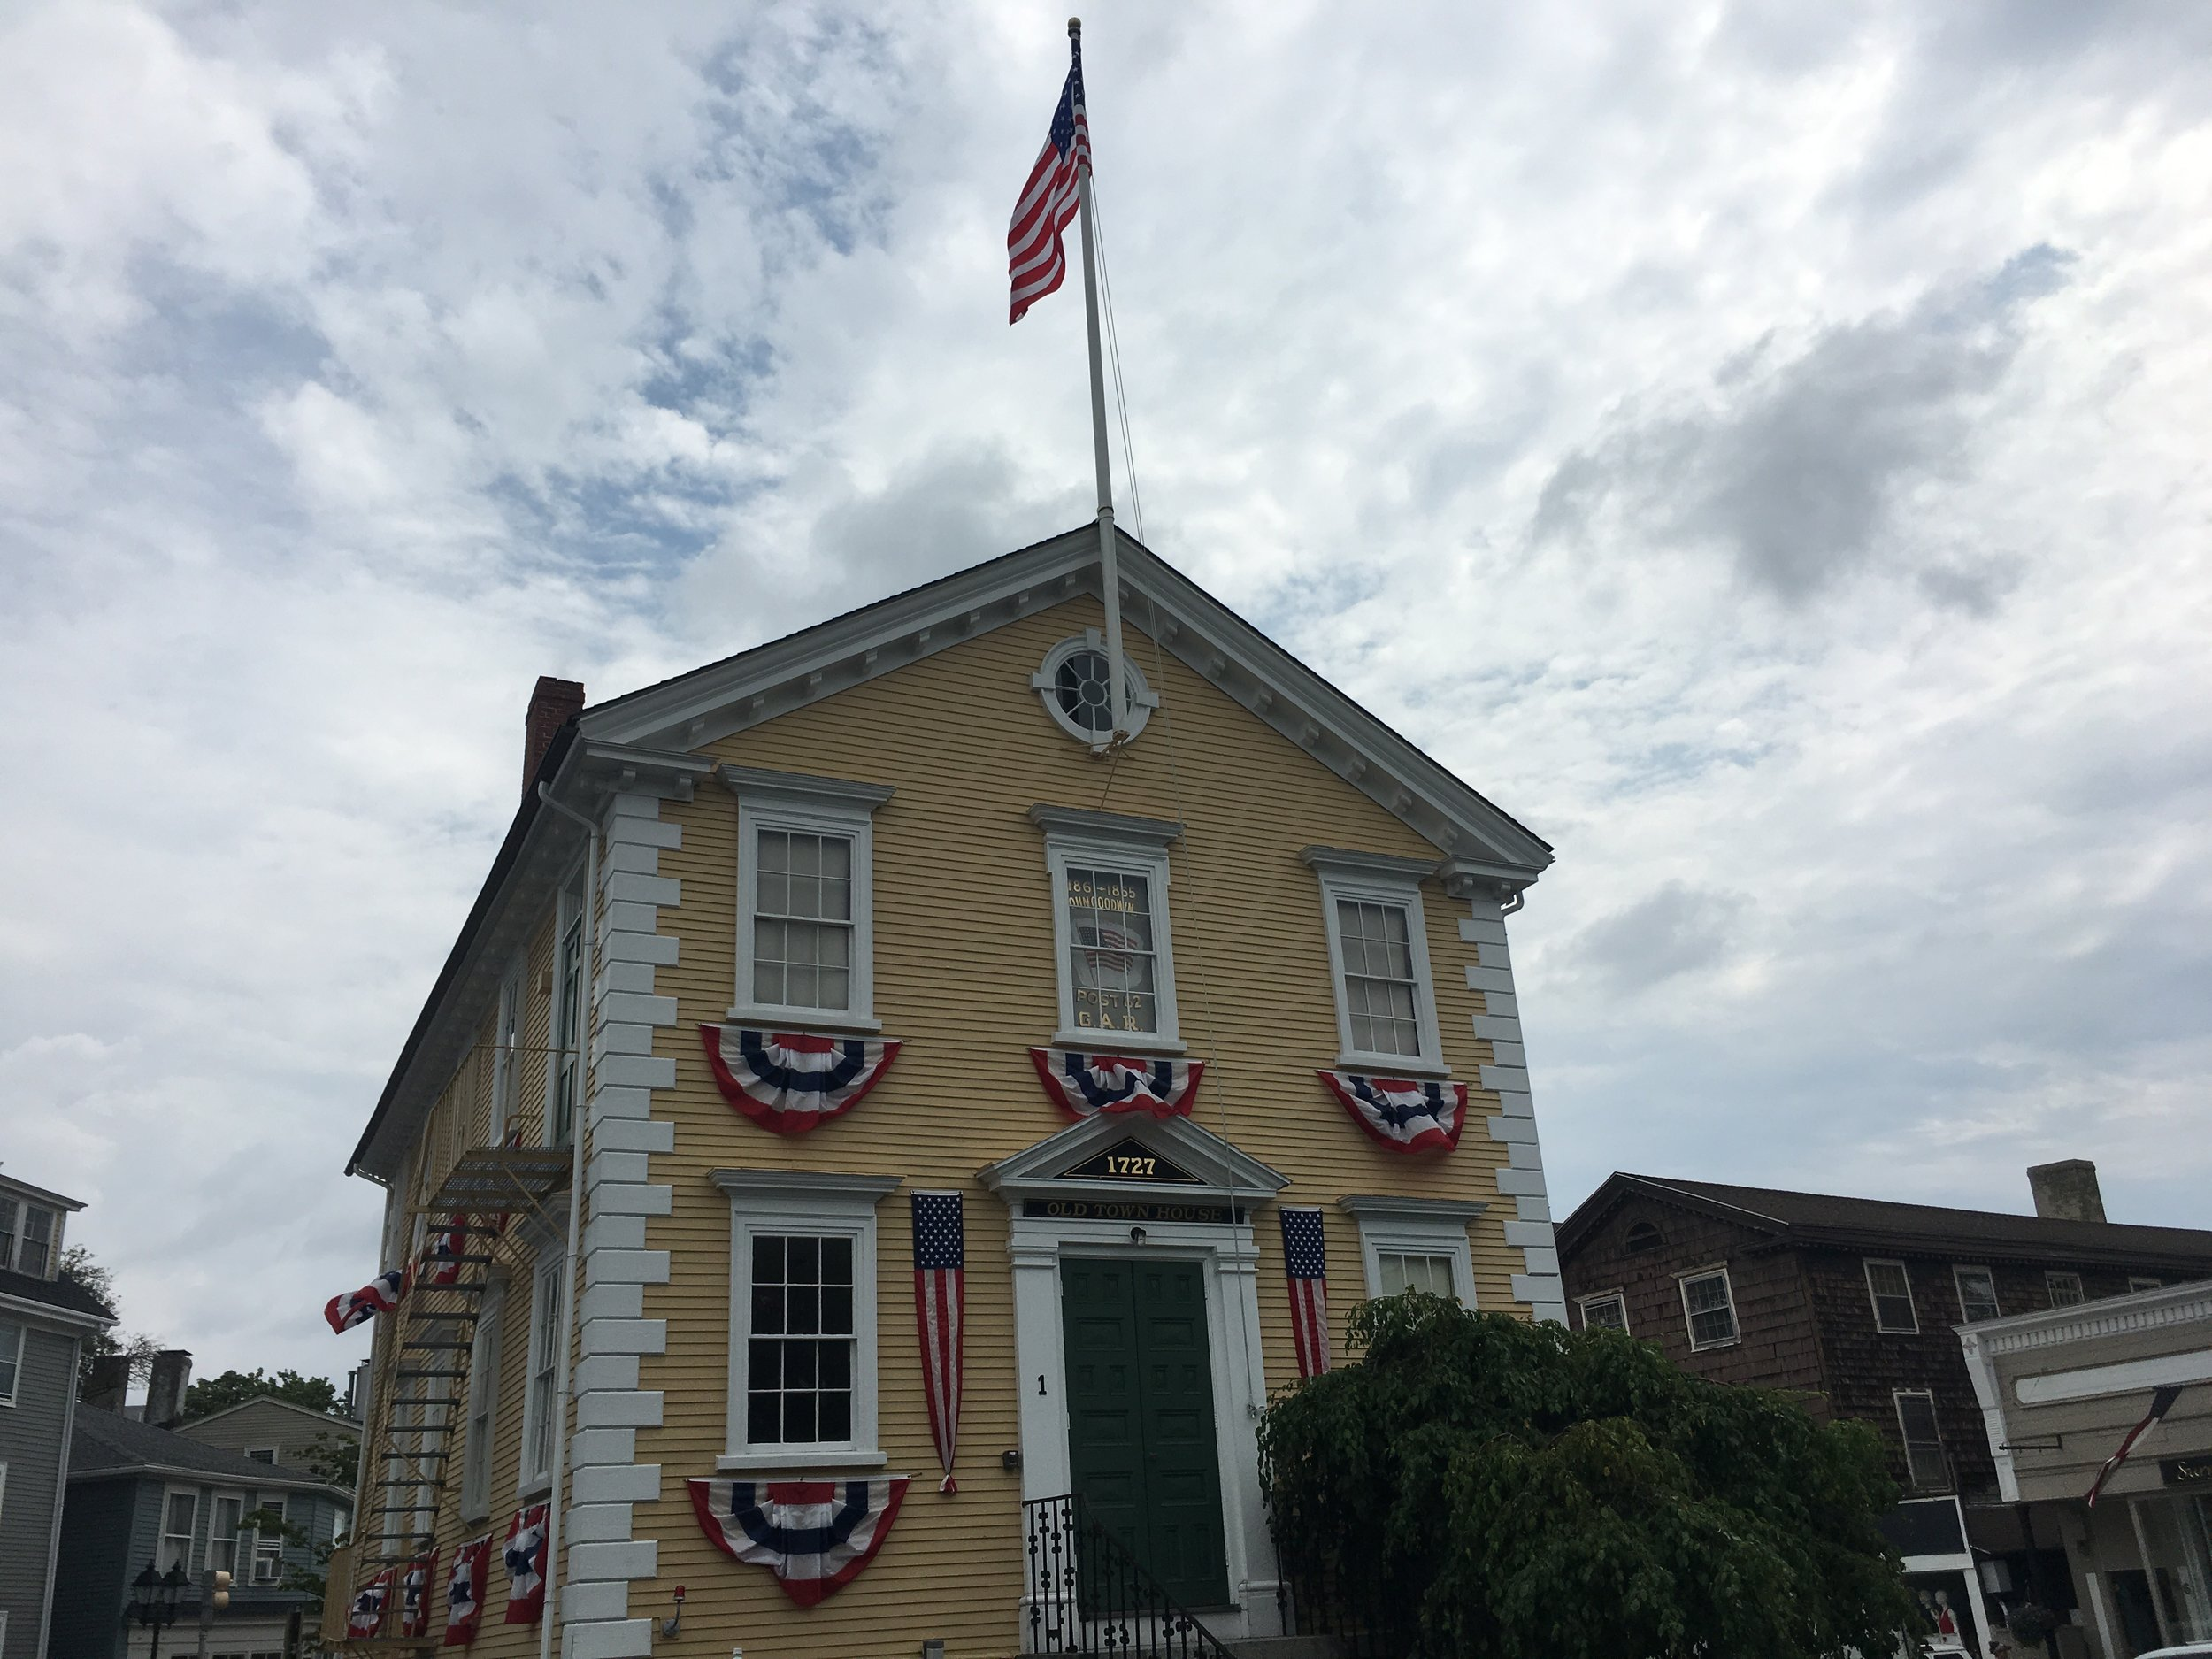 Scenes from Marblehead